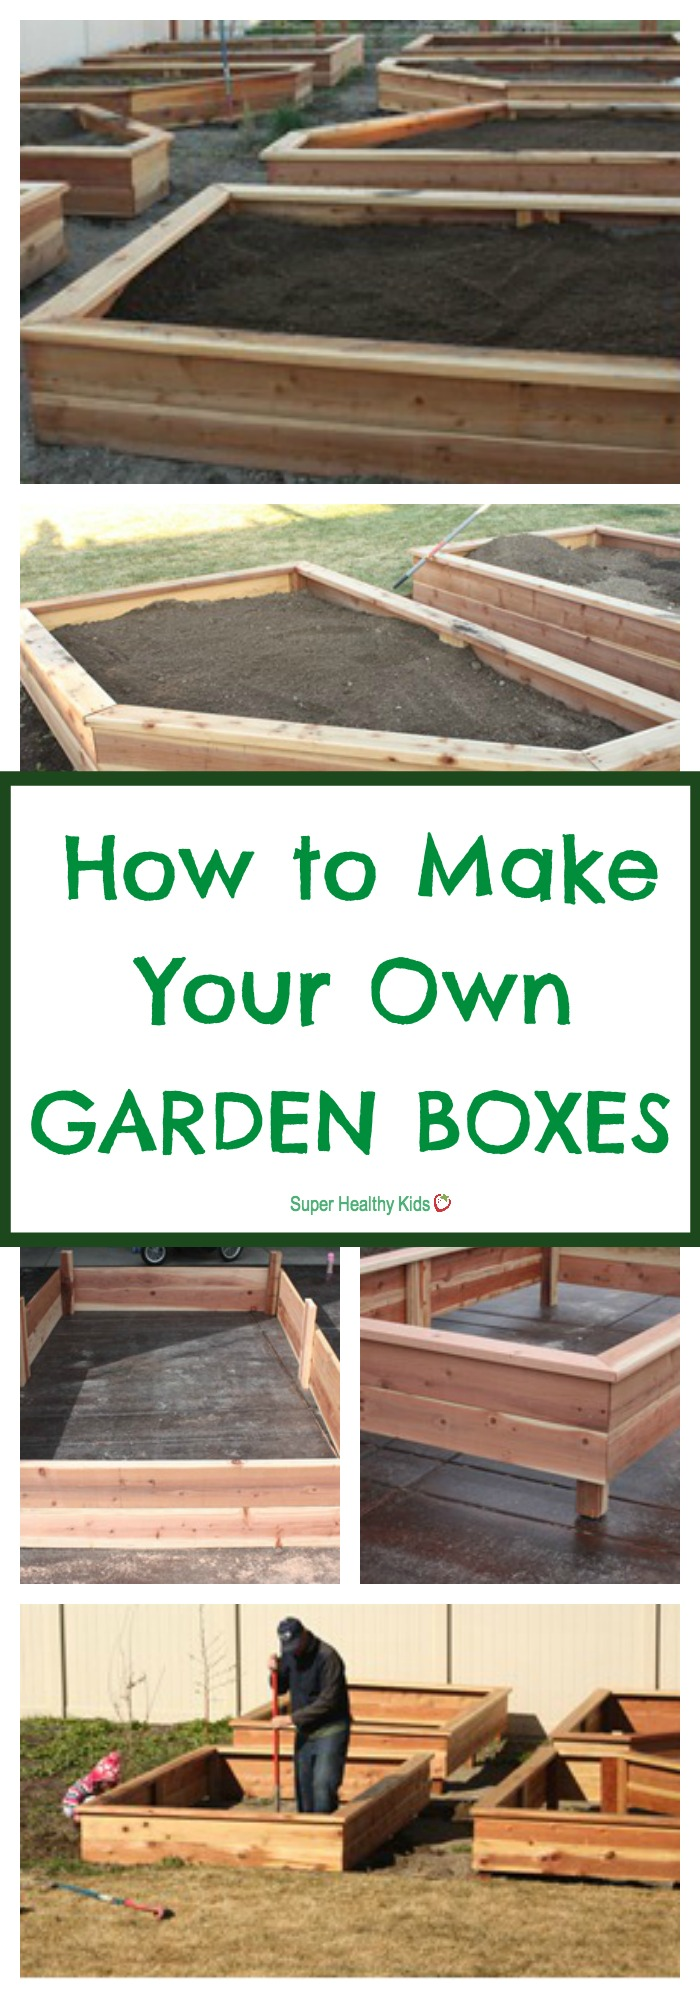 Make Your Right Connection Today Top 10: How To Make Your Own Garden Boxes